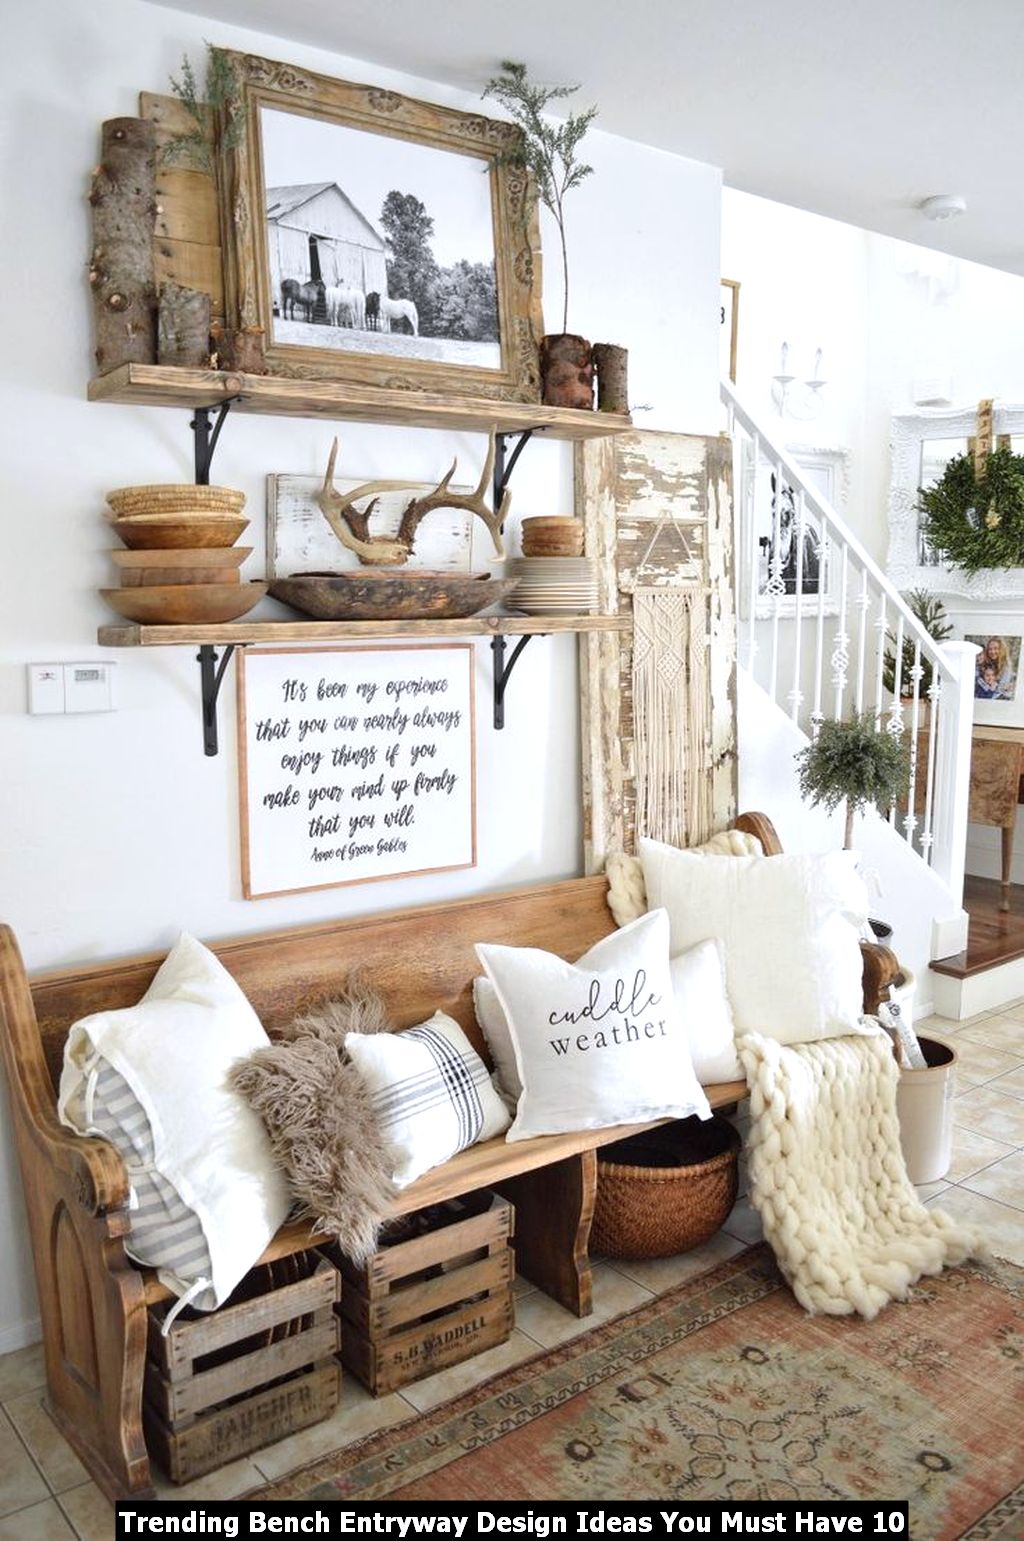 Trending Bench Entryway Design Ideas You Must Have 10